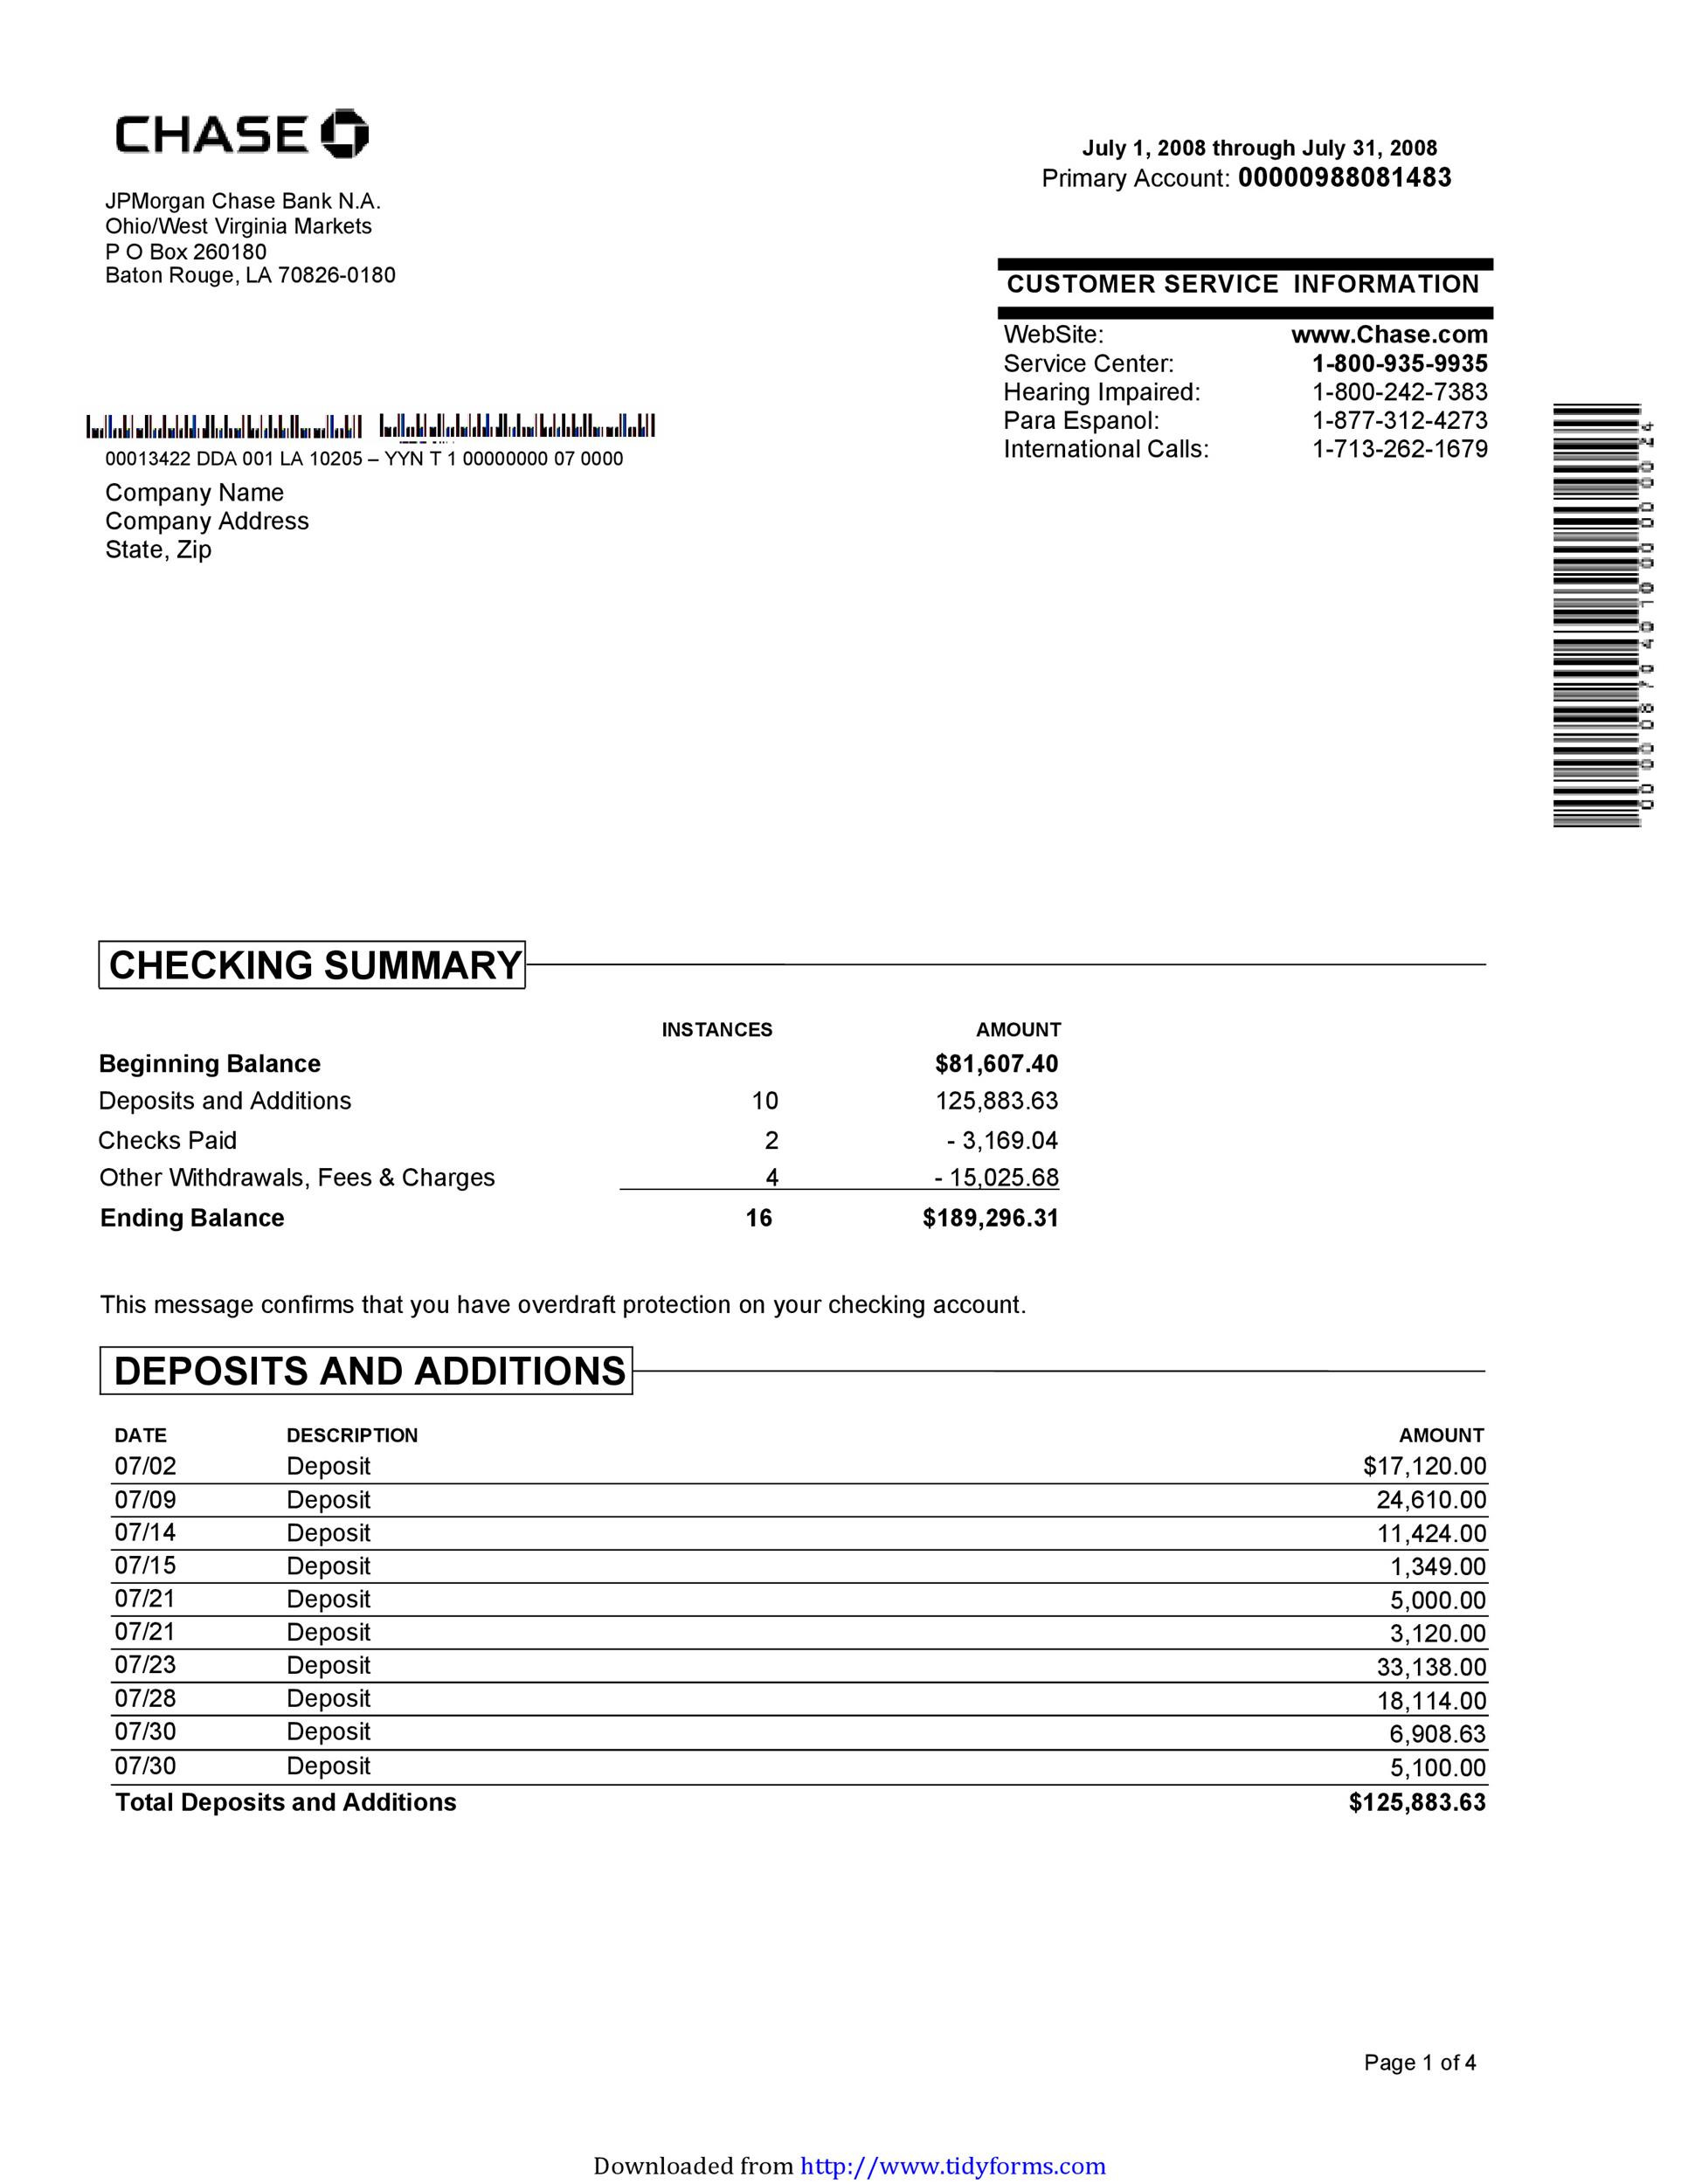 23 Editable Bank Statement Templates [FREE] TemplateLab